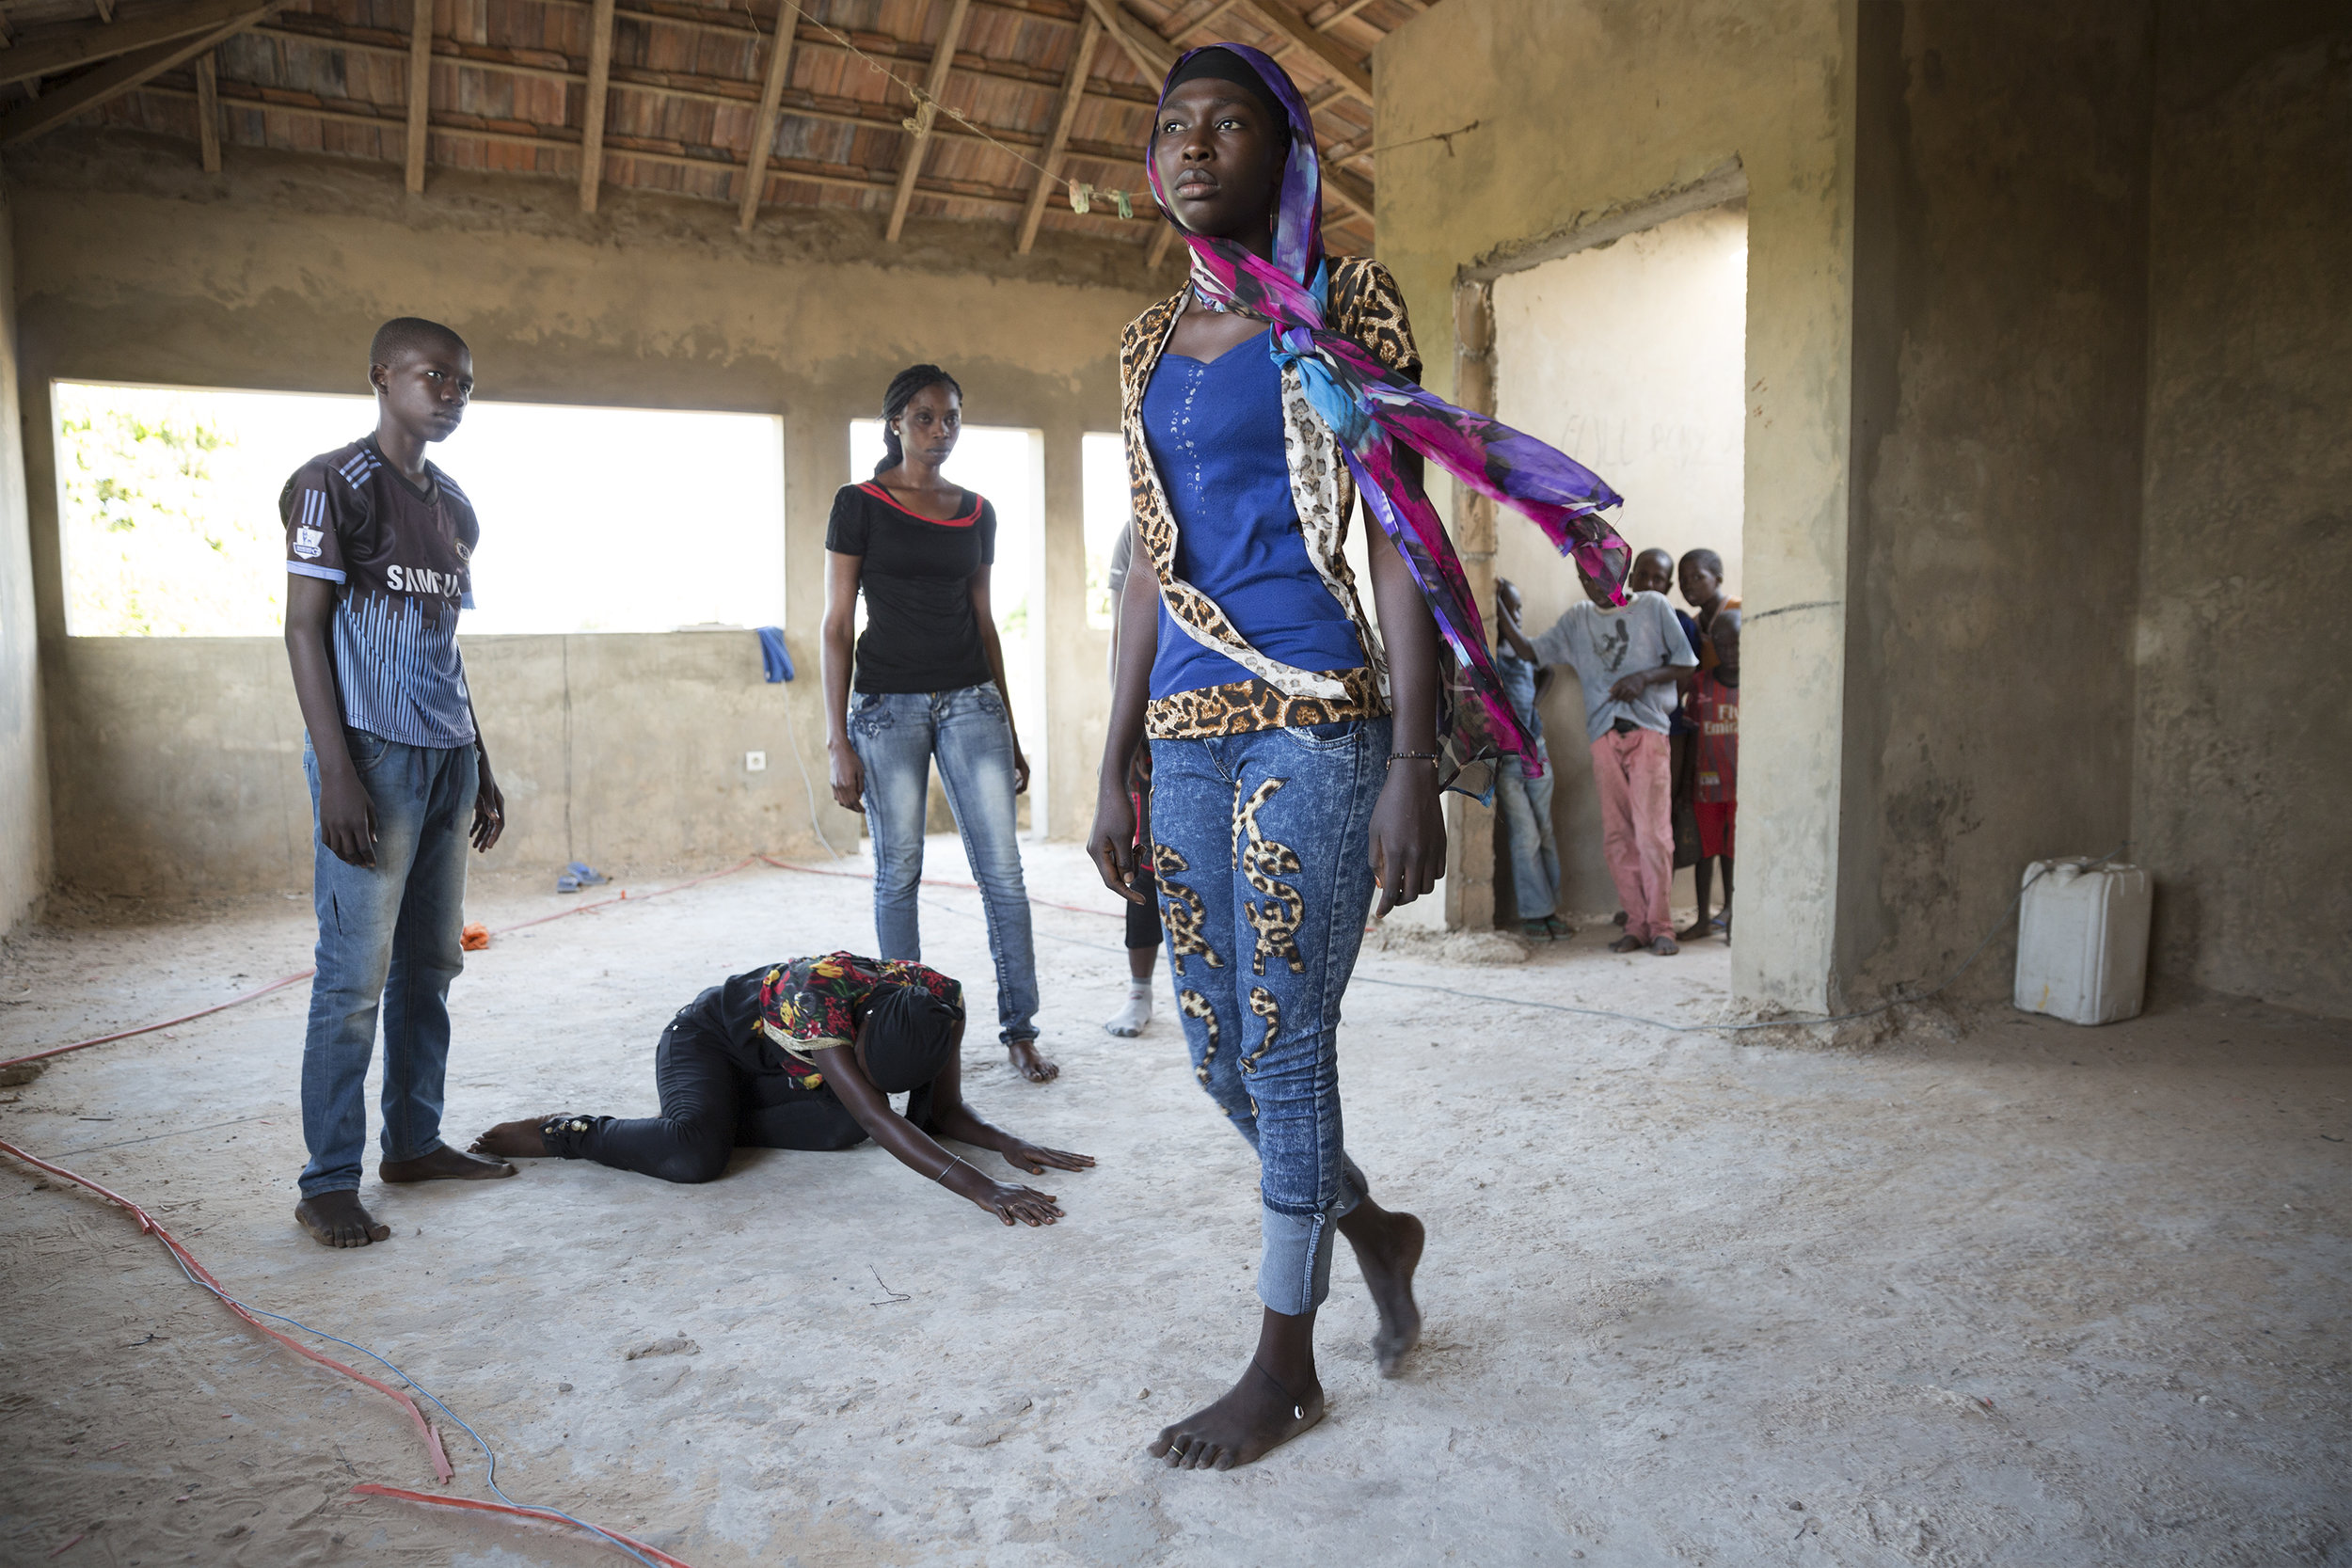 SENEGALESE APPLIED THEATRE - THEATRE OF THE PEOPLE